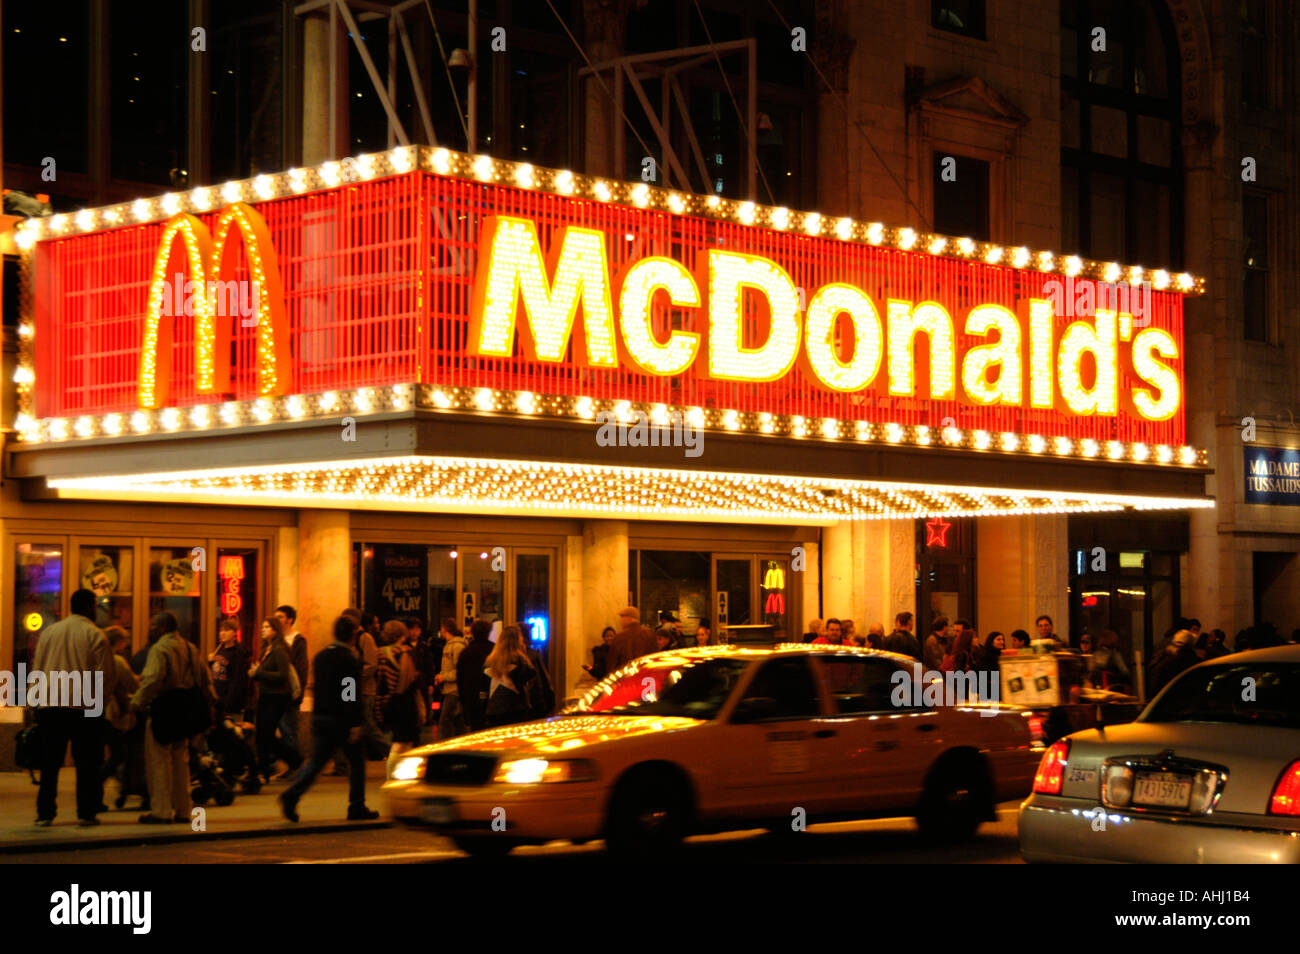 Mcdonald 39 s restaurant in times square manhattan new york for American cuisine restaurants in nyc